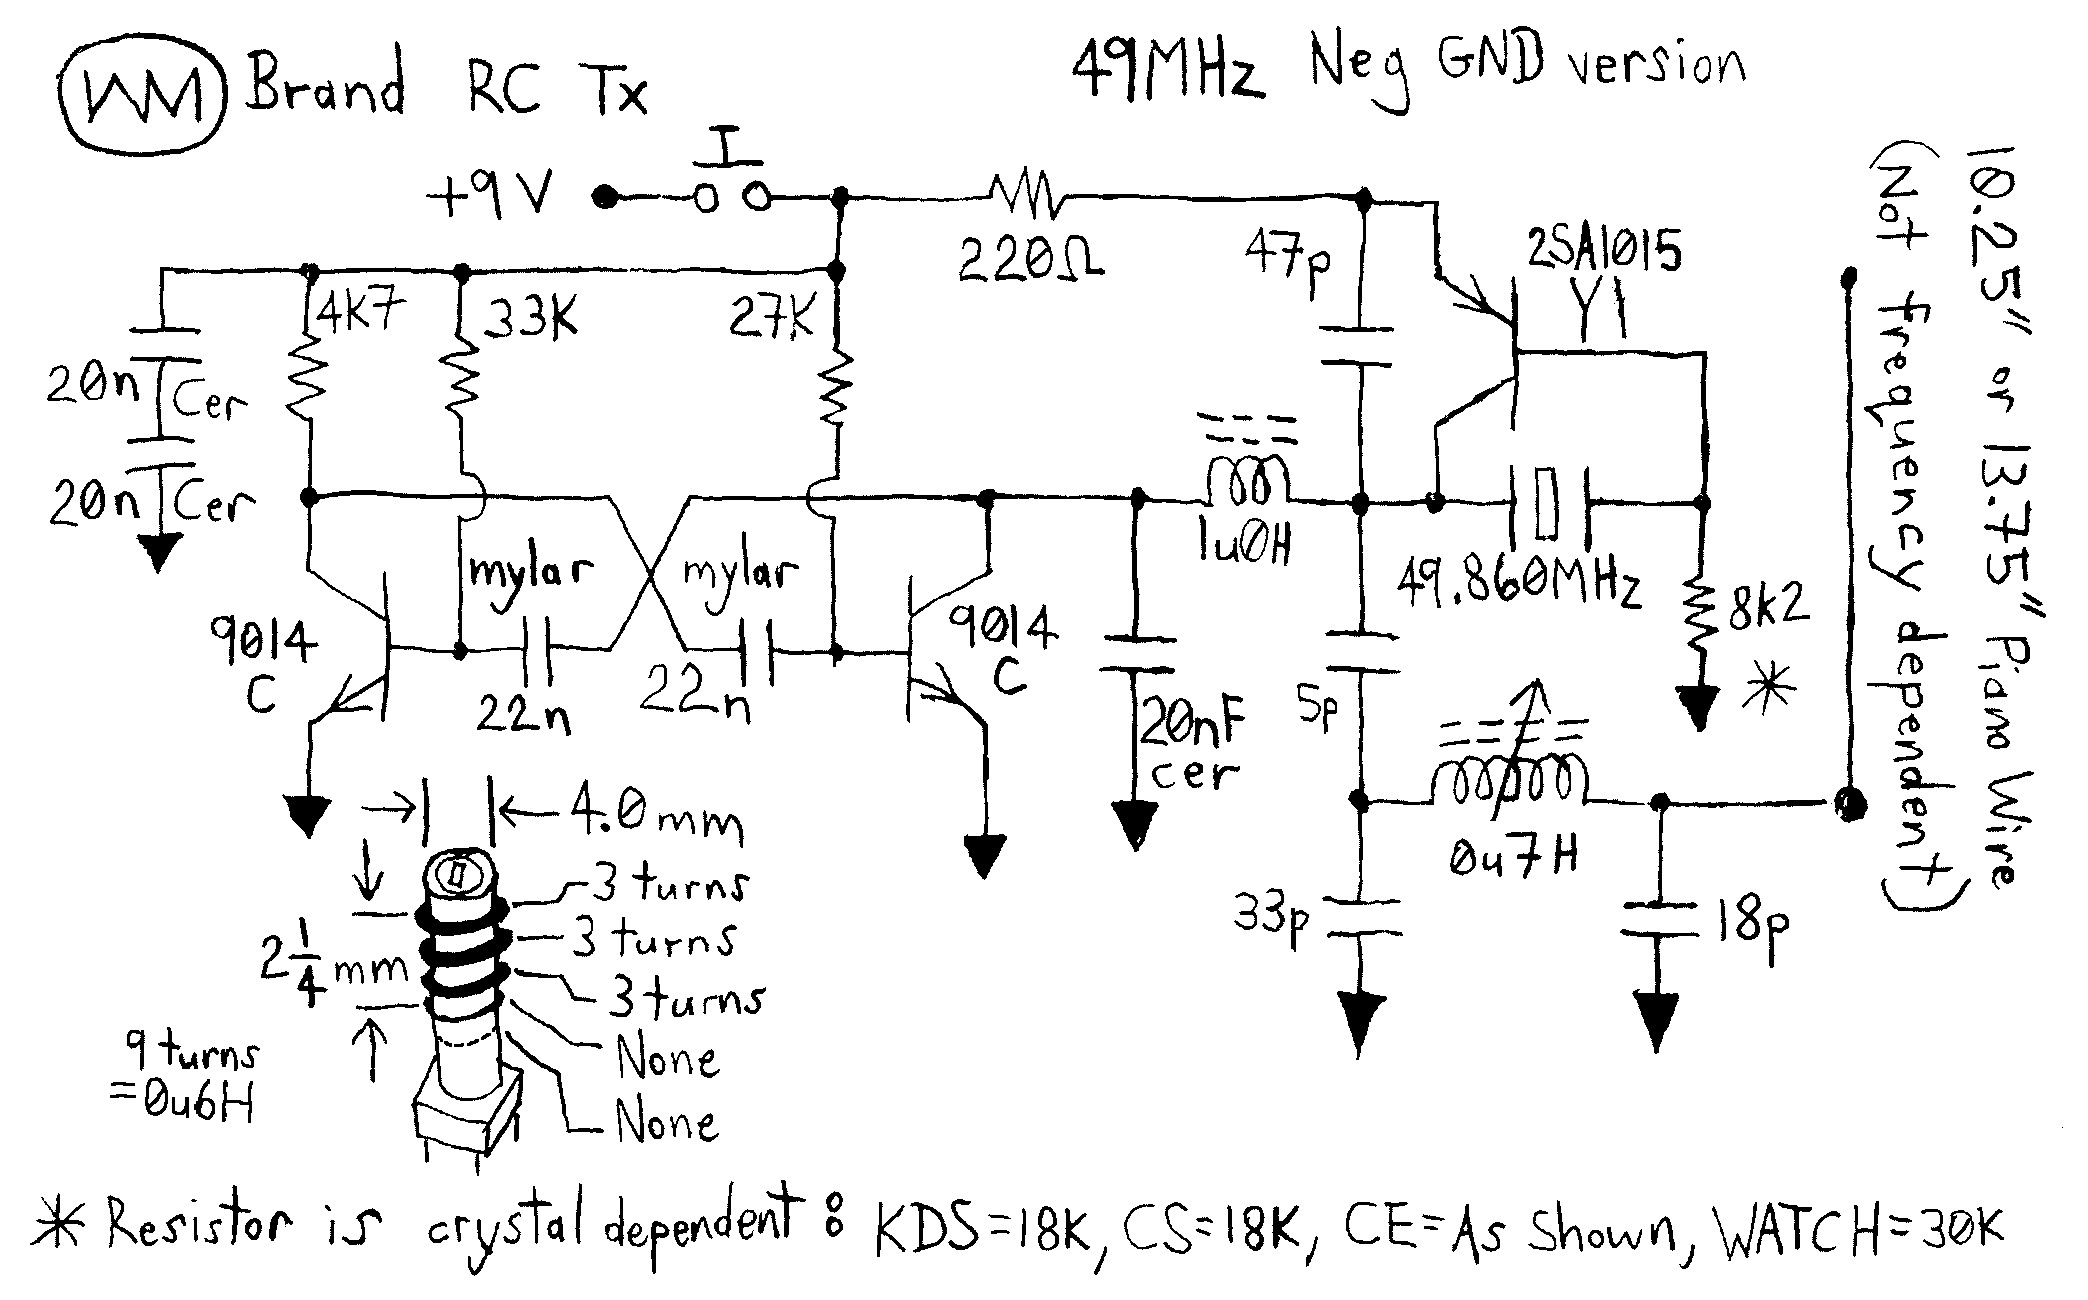 Rc Car Circuit Board Diagram Ponent Rc Car Circuit Diagram Board Simple Cars Single Channel Of Rc Car Circuit Board Diagram